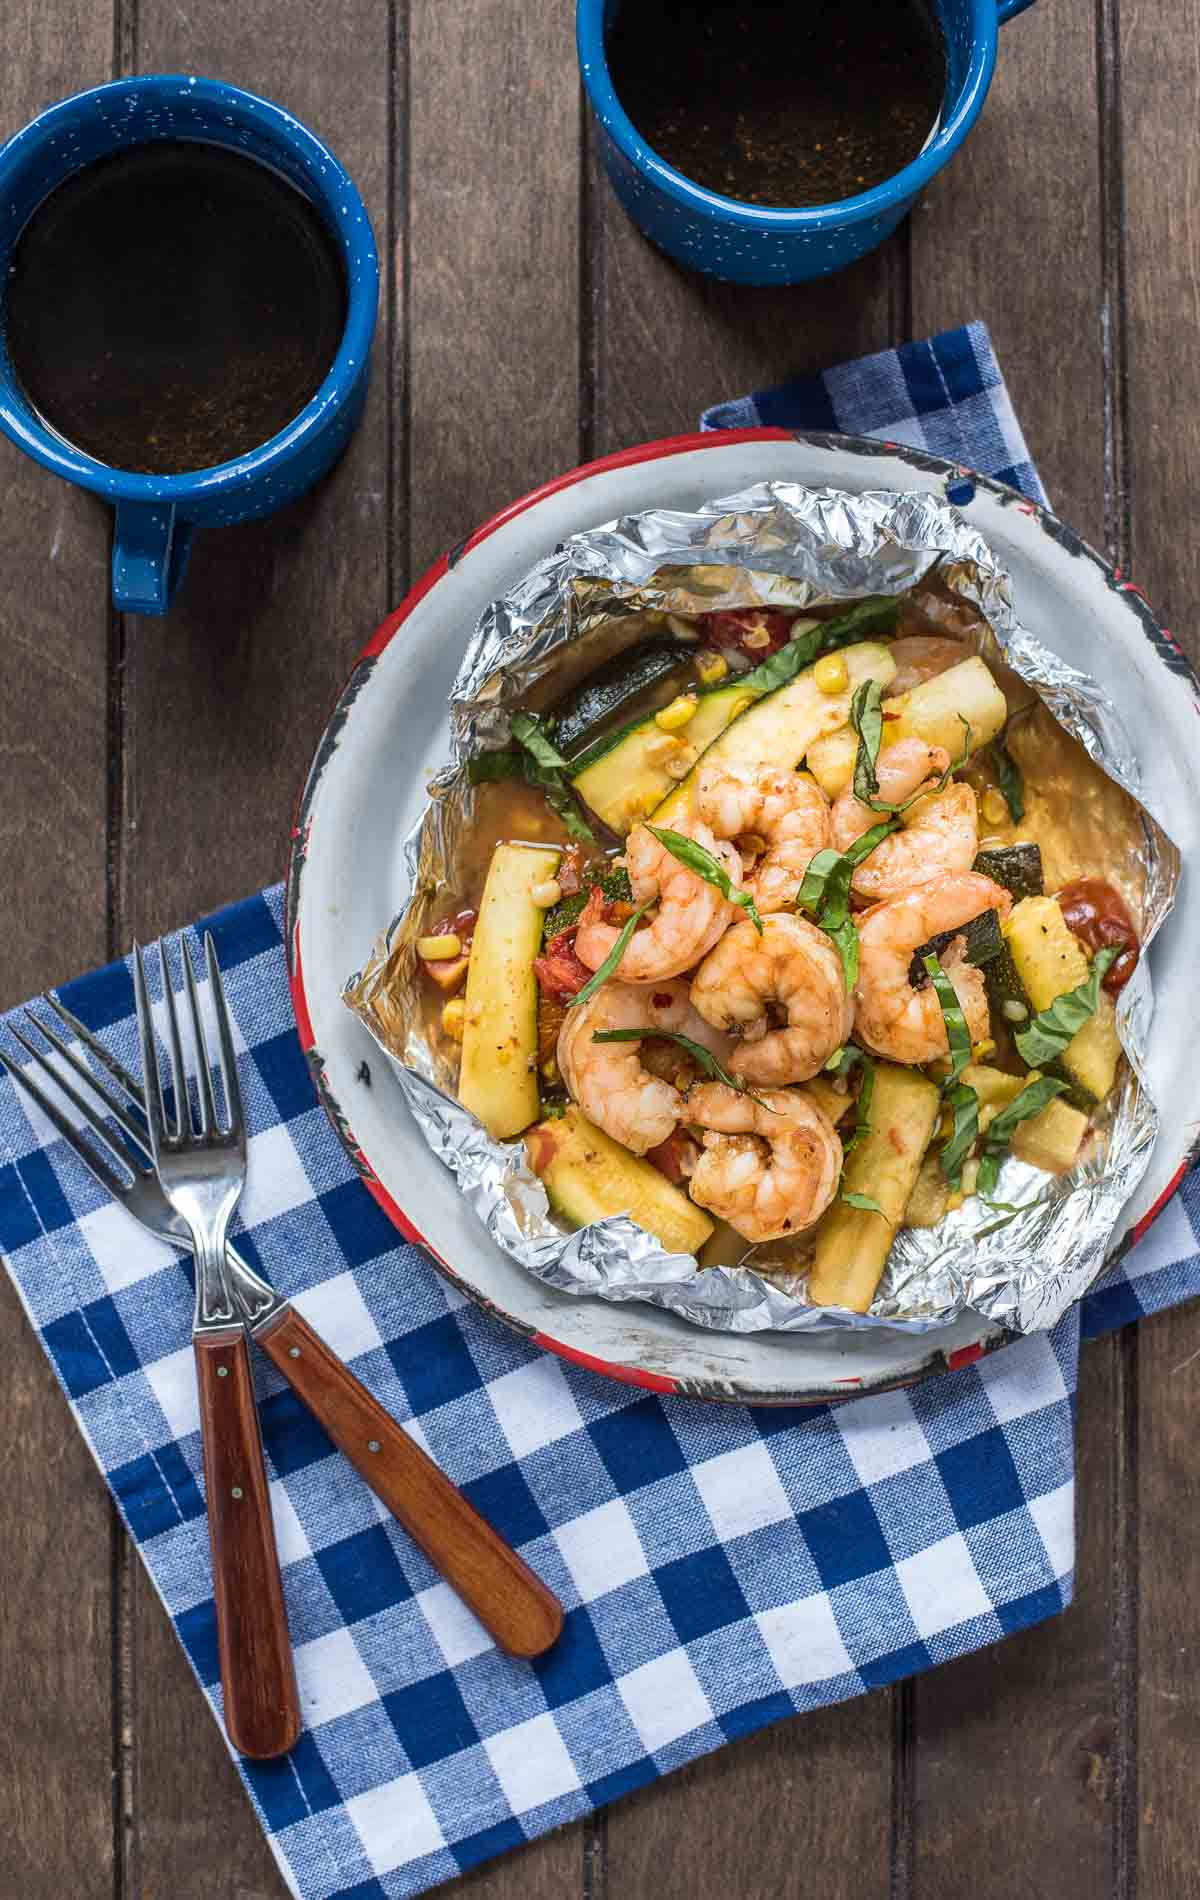 10 Healthy Foil Pack Meals For When You Don't Want To Do Dishes